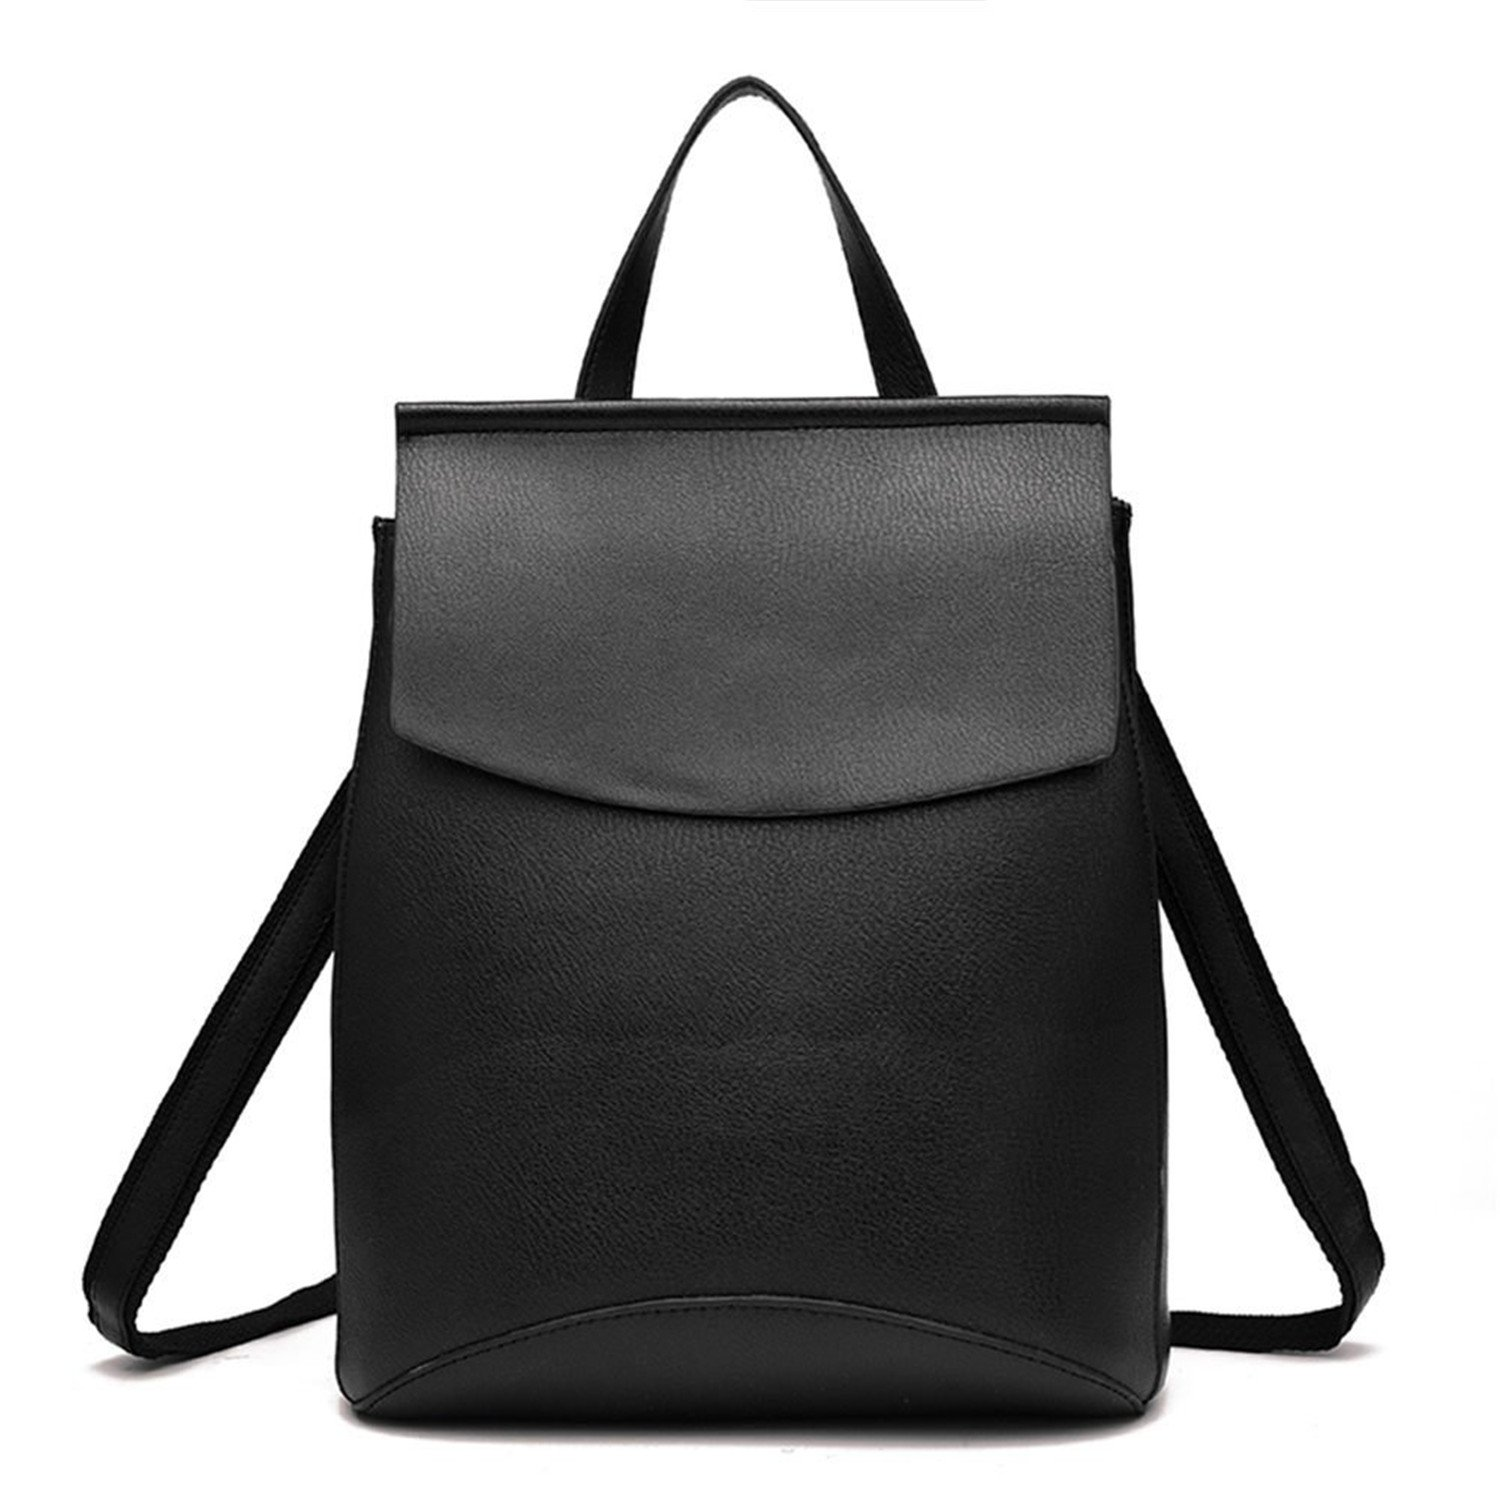 Black Soto6ro Fashion Backpack for Women Soft PU Leather Backpack Purse Casual Daypack